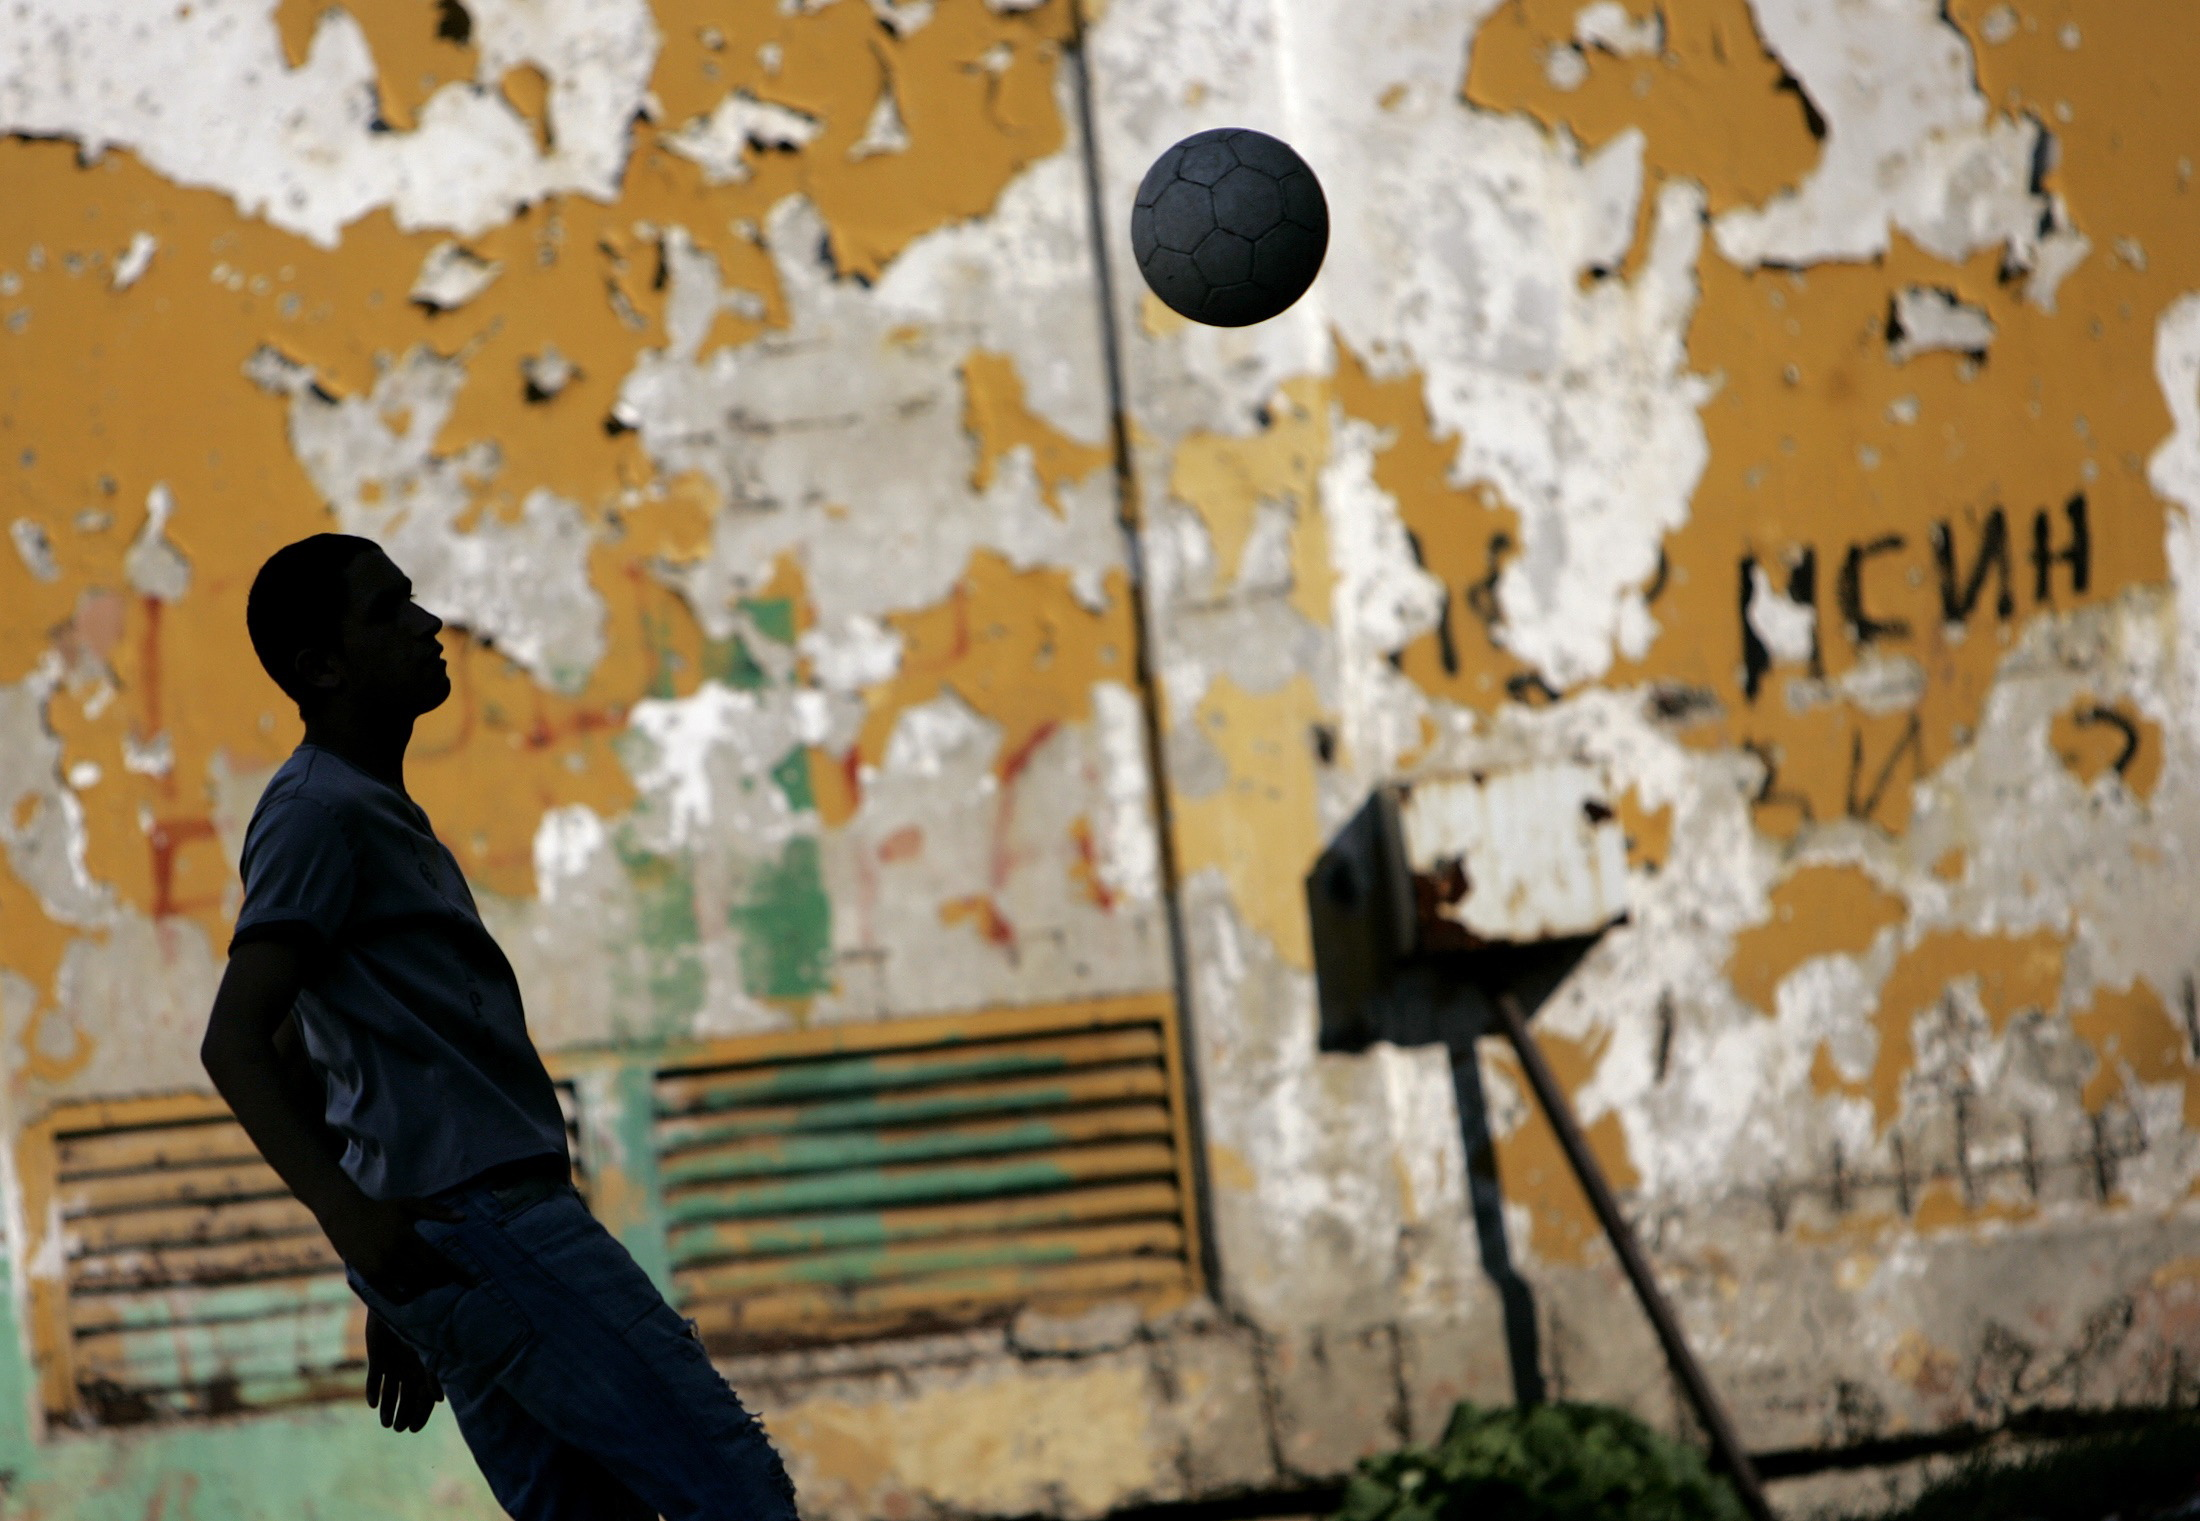 "A Bulgarian Roma boy plays soccer at a school in the Roma suburb of Fakulteta in Sofia, before the visit of U.S. billionaire investor George Soros, June 11, 2007. Soros is in Bulgaria to take part in an international initiative ""Decade of Roma Inclusion"". Eight south eastern European states launched a 10-year initiative in 2005 to help millions of Roma Gypsies escape the discrimination, segregation and poverty that has isolated them on the margins of mainstream society. REUTERS/Stoyan Nenov (BULGARIA) Picture Supplied by Action Images *** Local Caption *** 2007-06-11T171139Z_01_SOF19_RTRIDSP_3_BULGARIA-SOROS.jpg"